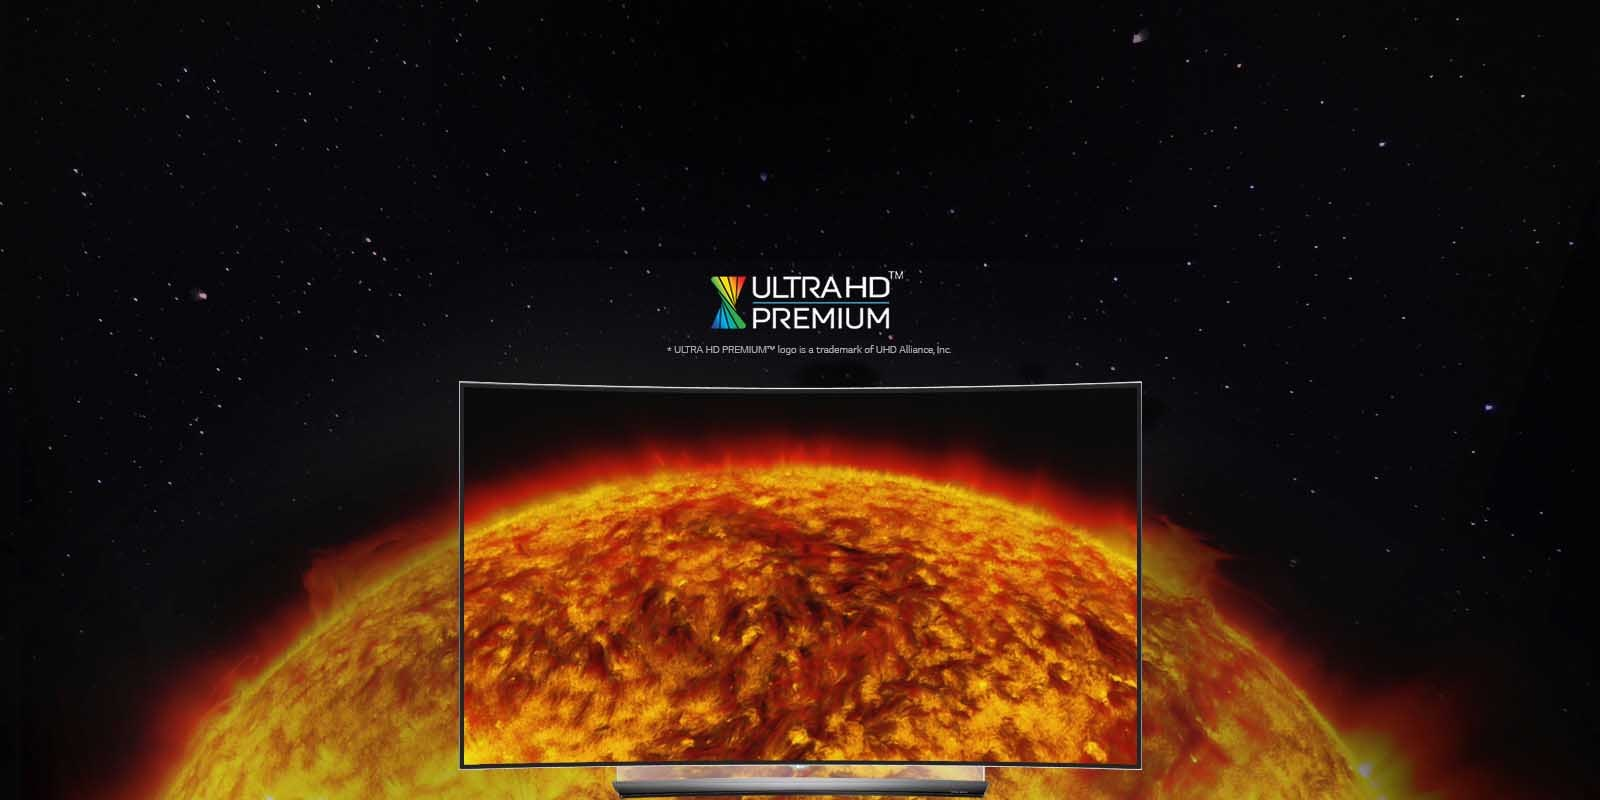 ULTRA HD PREMIUM A New Standard Of Defining TV